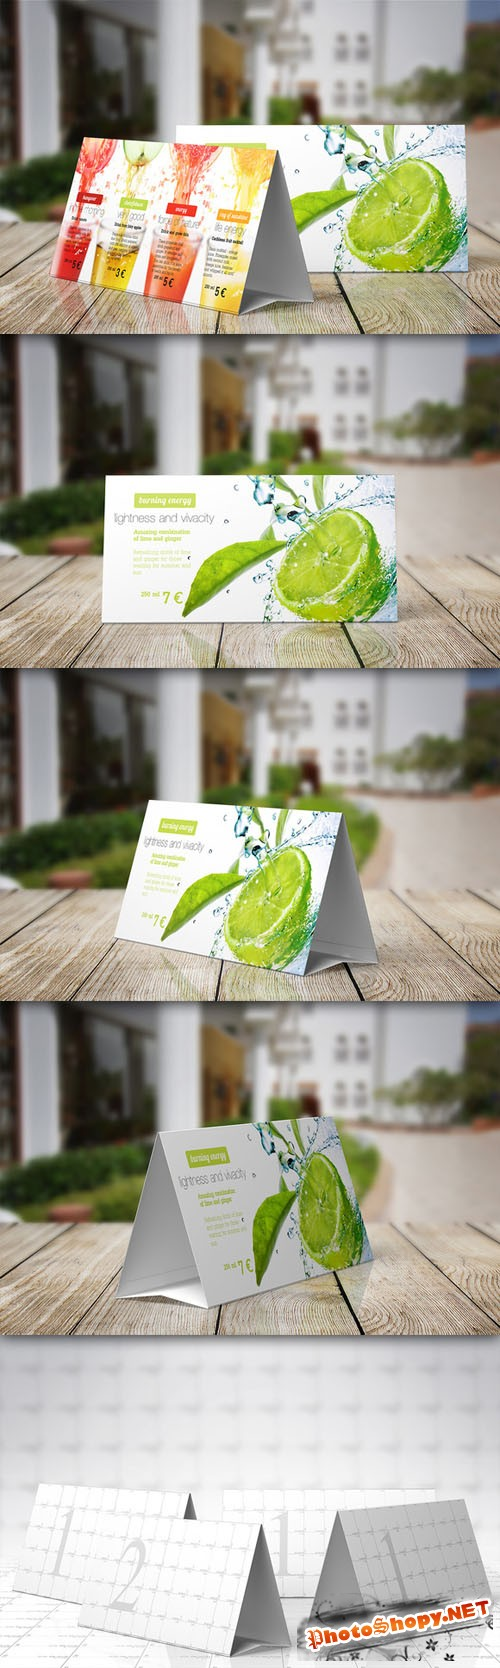 CreativeMarket - Table Tent Mock-up Template Vol.4